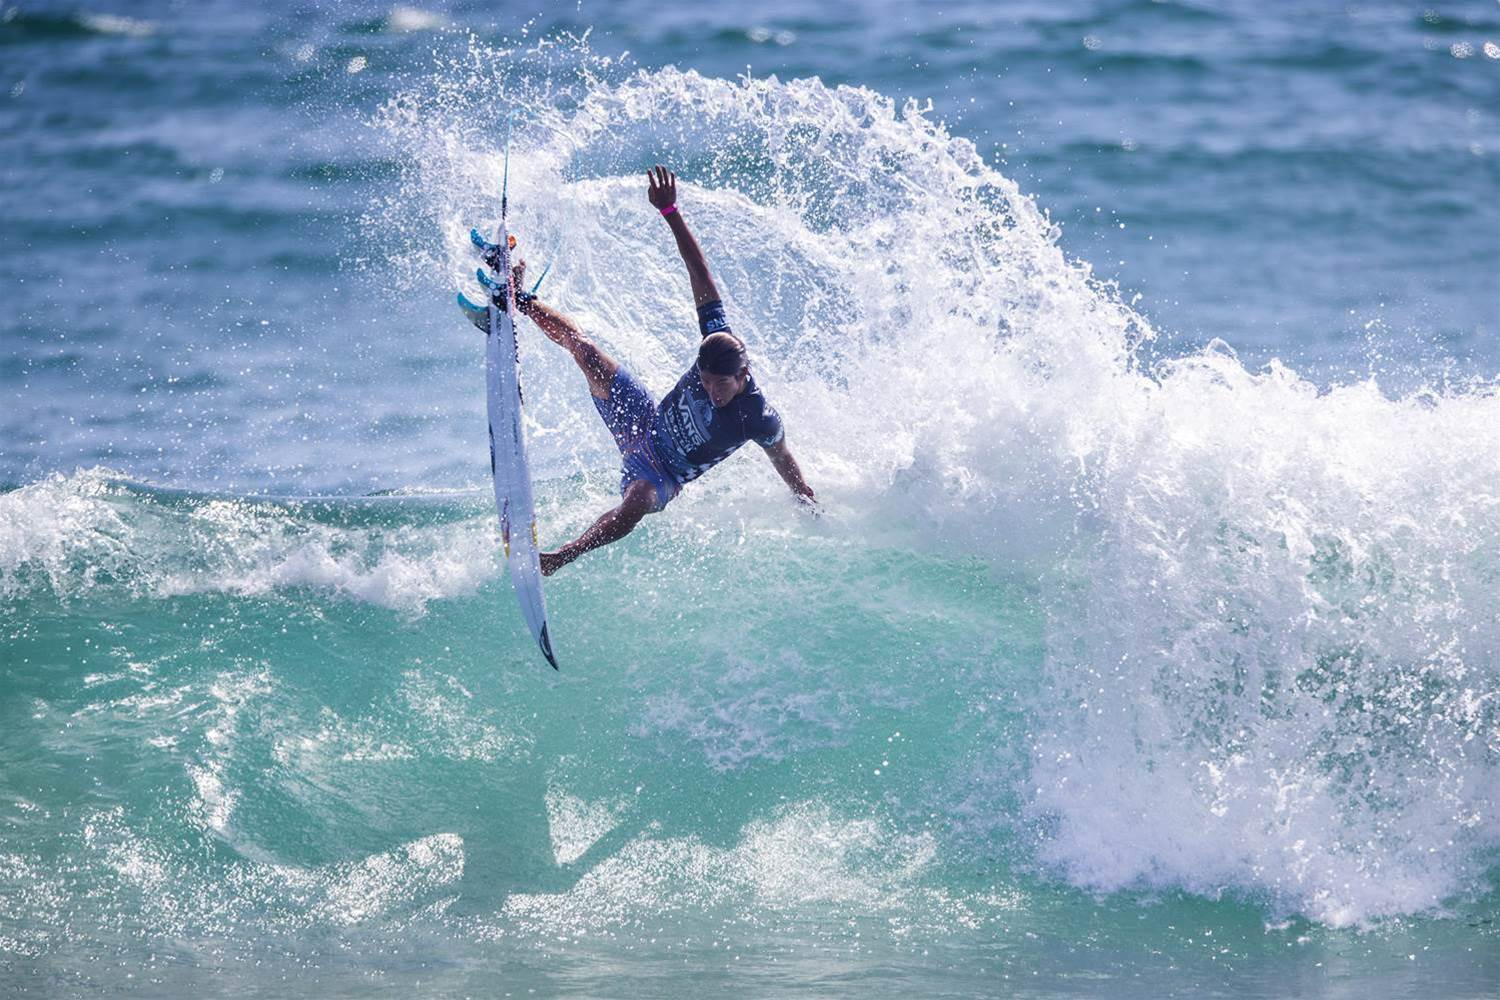 Igarashi grabs two from two at the US Open